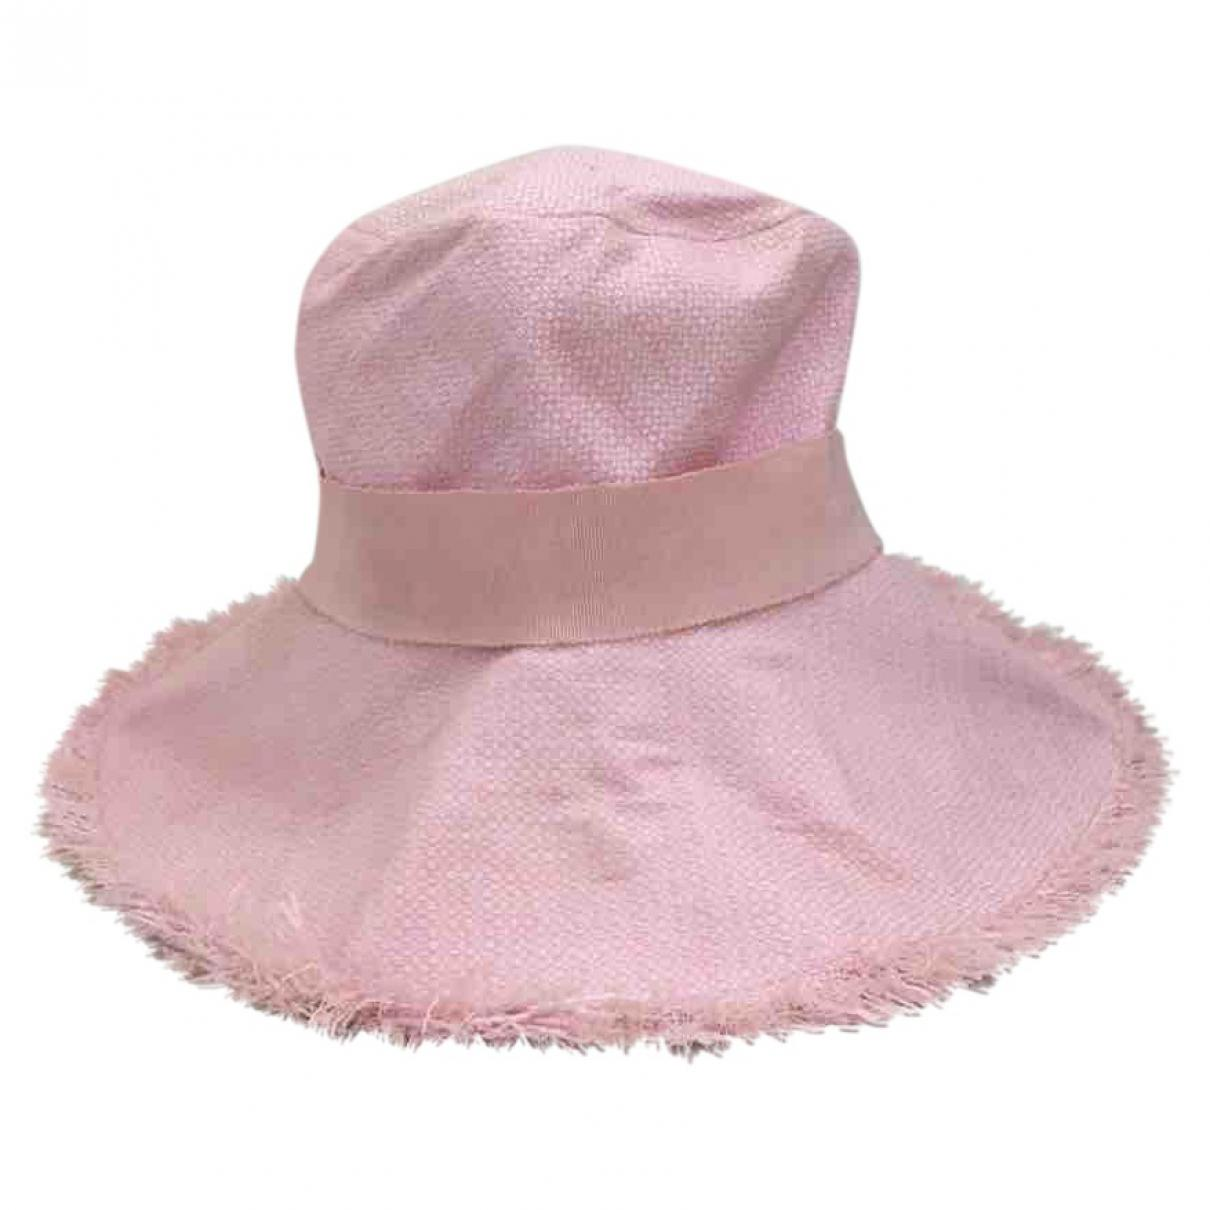 a731507de6b Lyst - Chanel Pre-owned Pink Cotton Hats in Pink